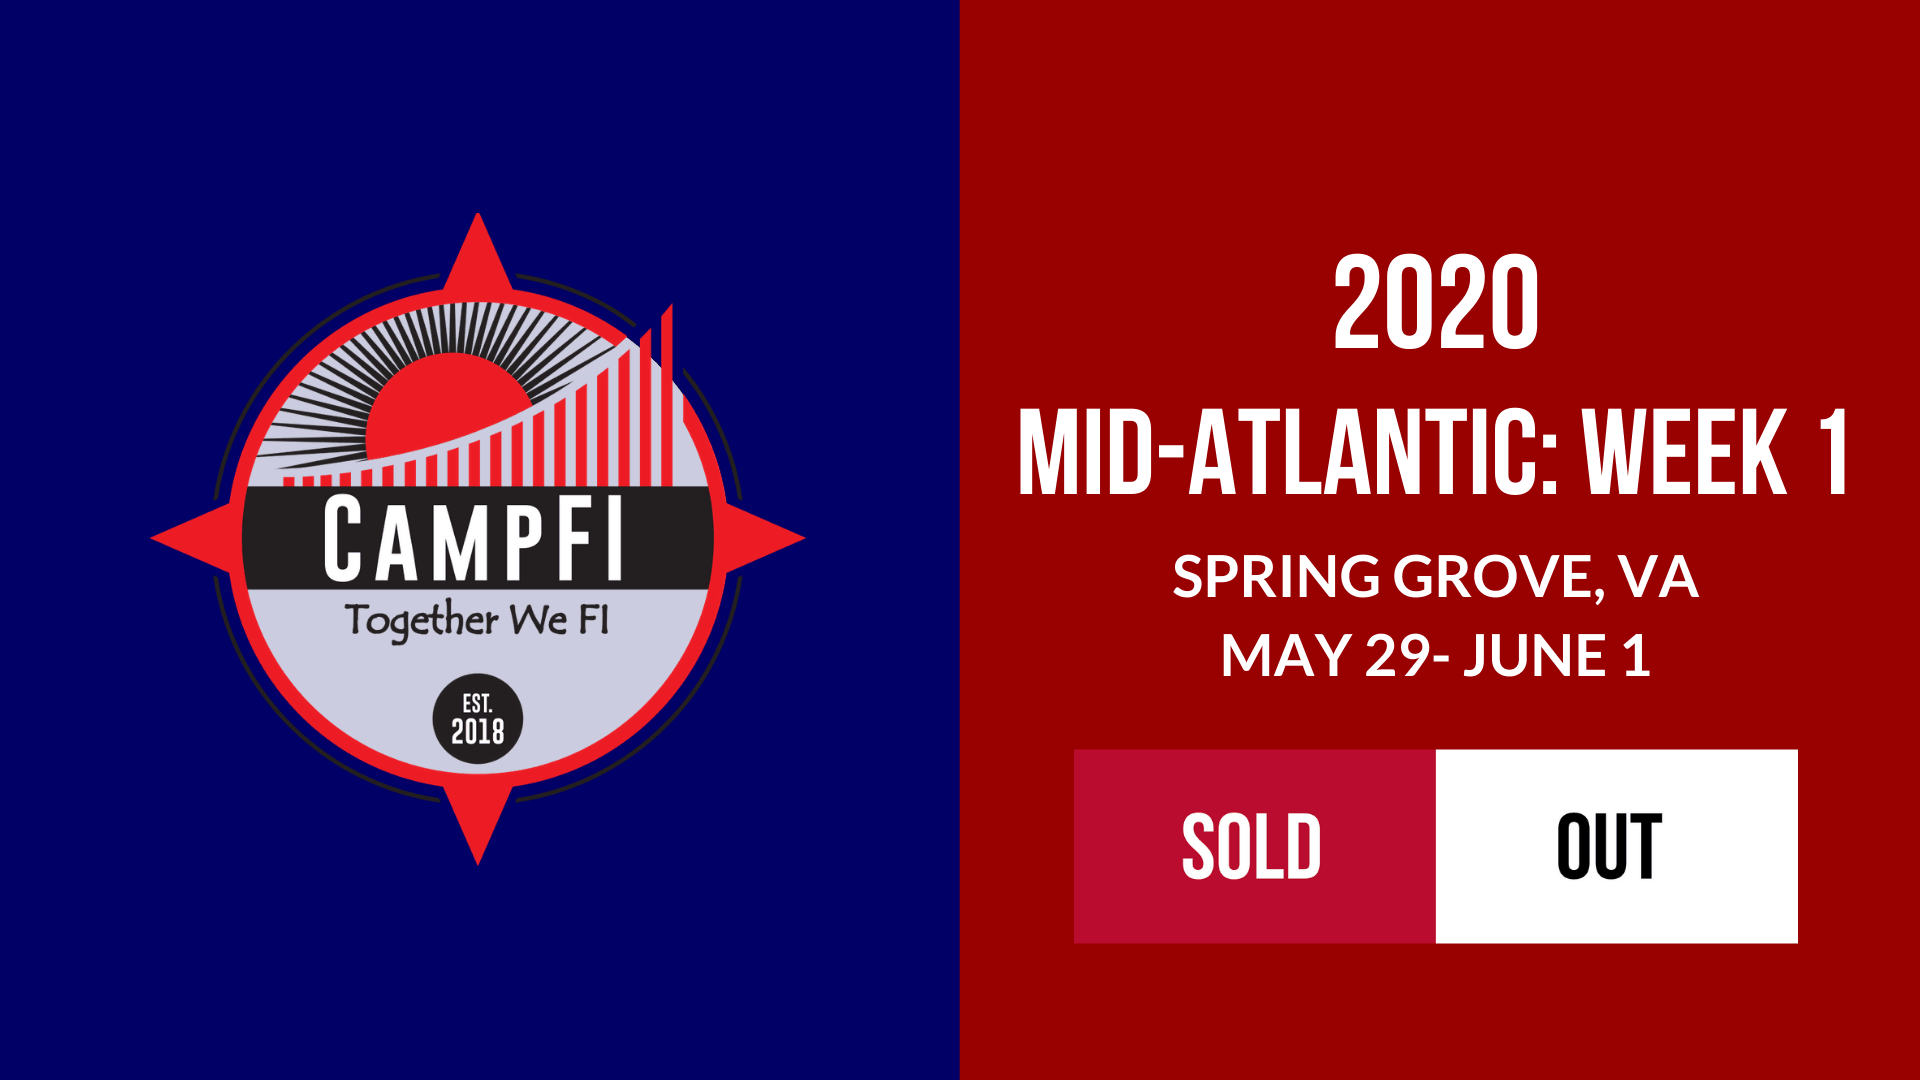 CampFI Mid-Atlantic: Week 1 - Sold Out - Fiology